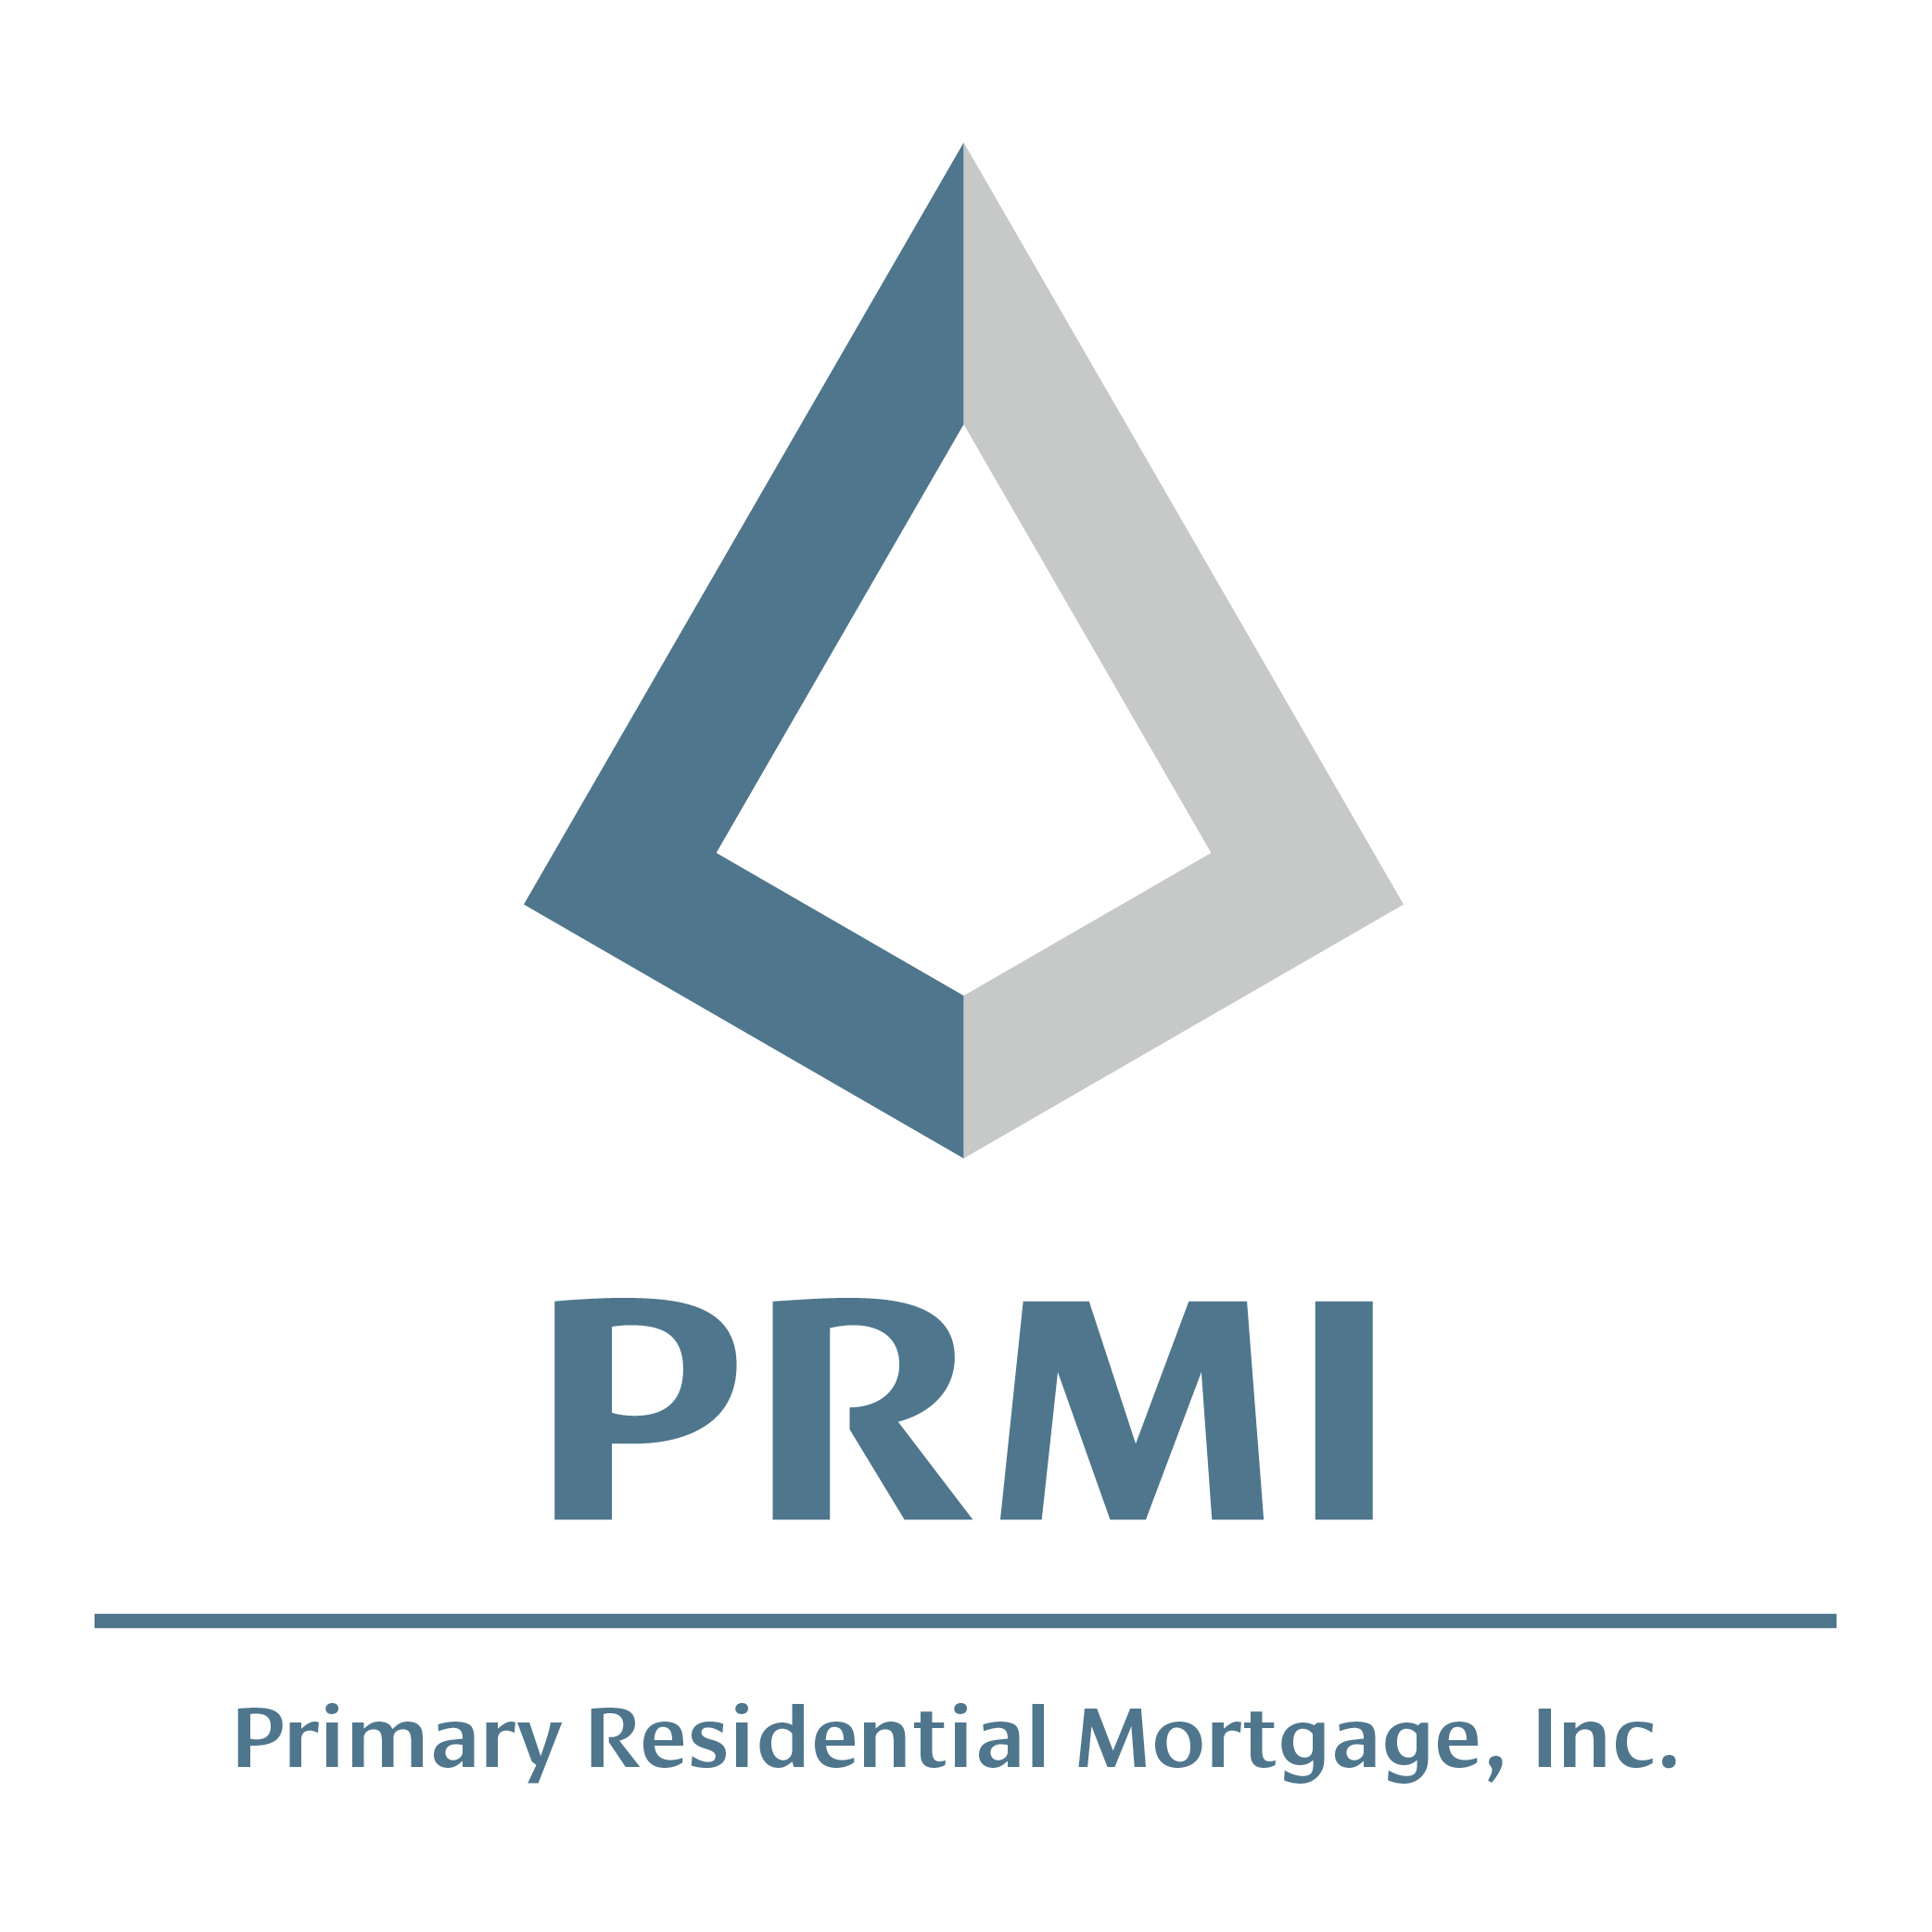 Primary Residential Mortgage, Inc. - Glendale, CA 91202 - (818)937-0266 | ShowMeLocal.com